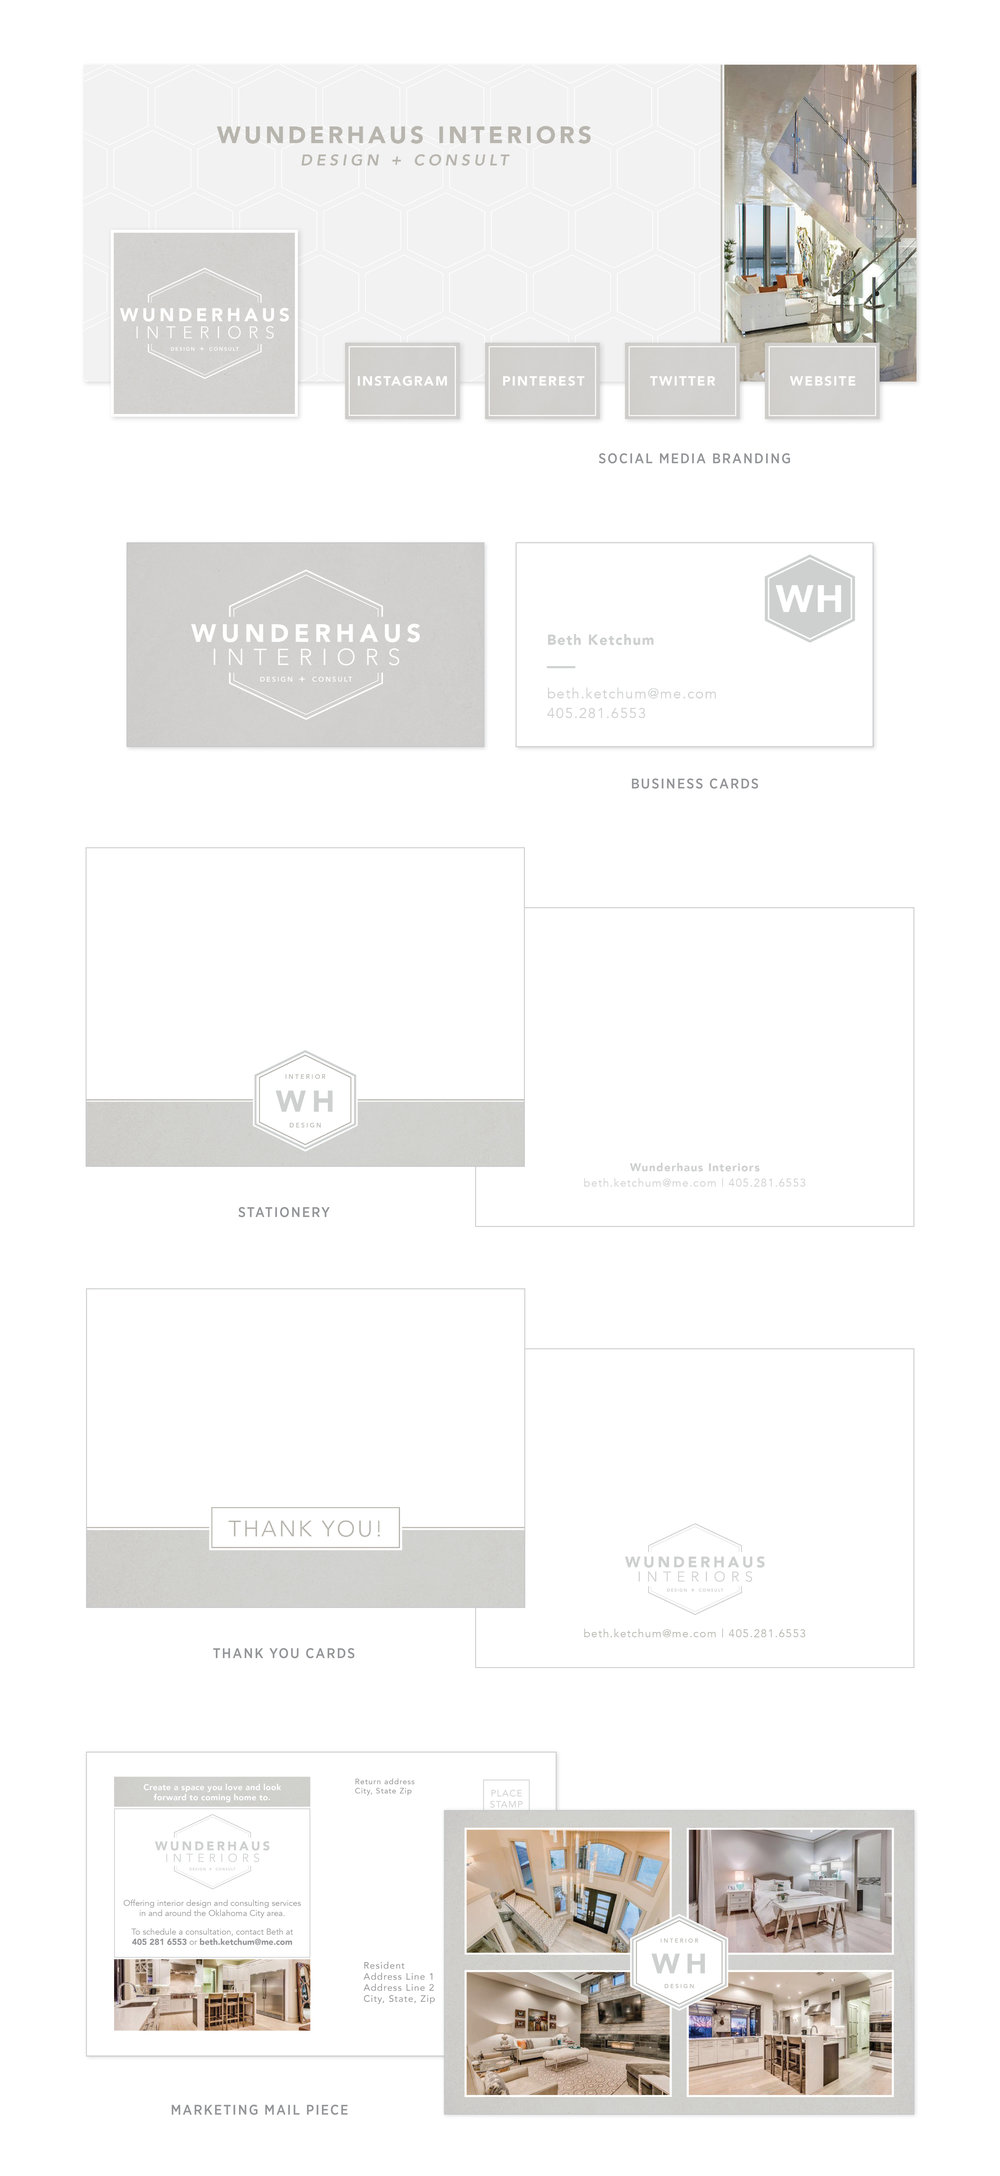 Wunderhaus Interiors branding + collateral design | casilong.com #casilongdesign #fearlesspursuit #branding